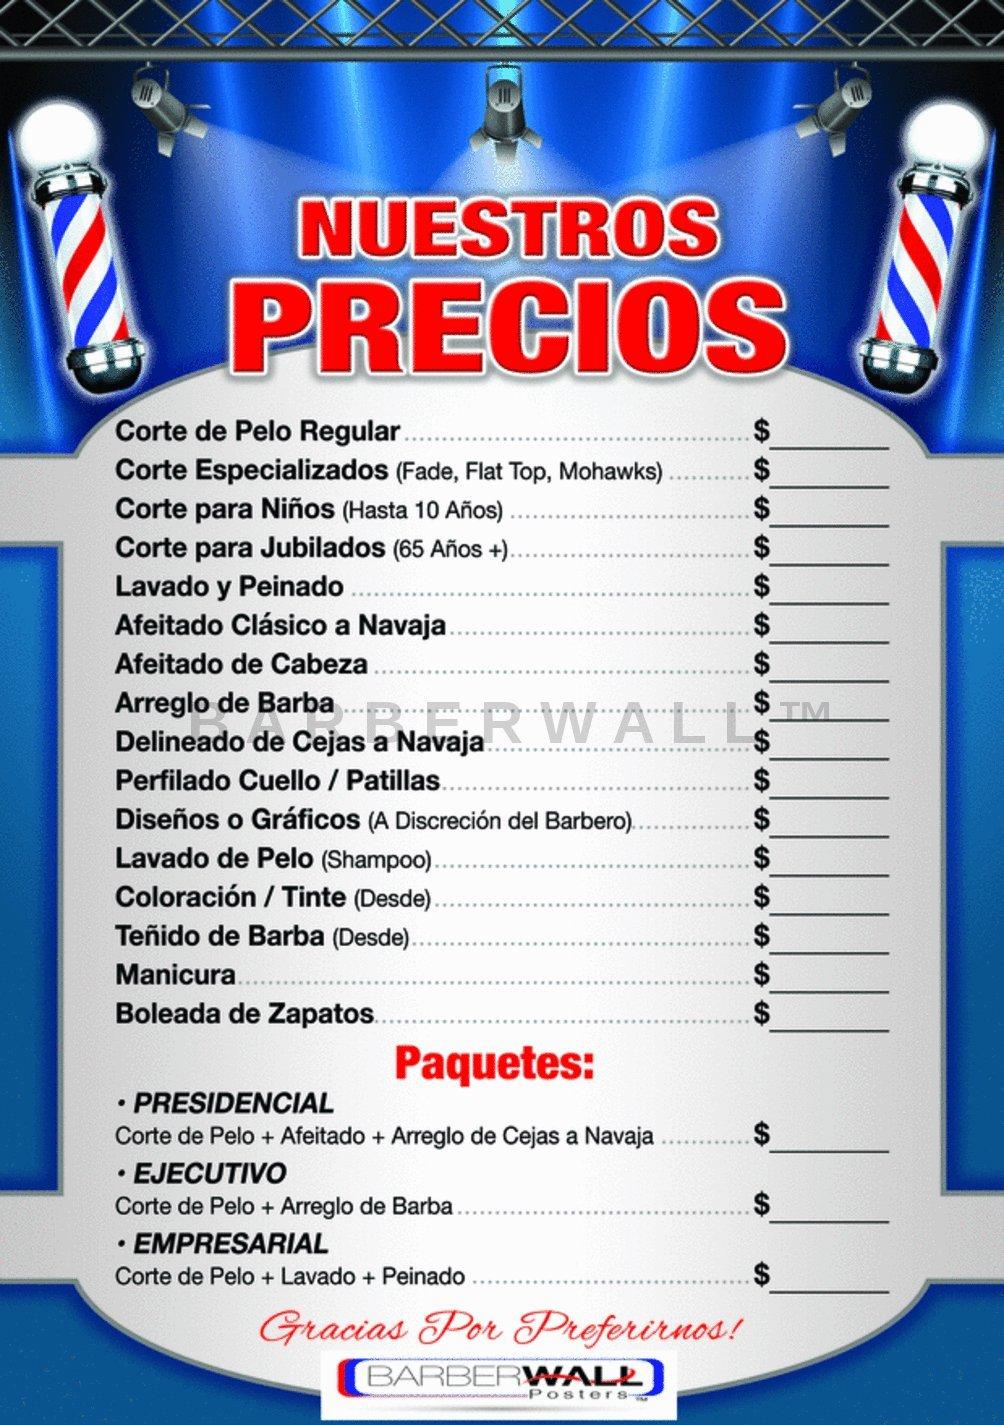 Amazon.com: Barber Shop lista de precios por [barberwall ...